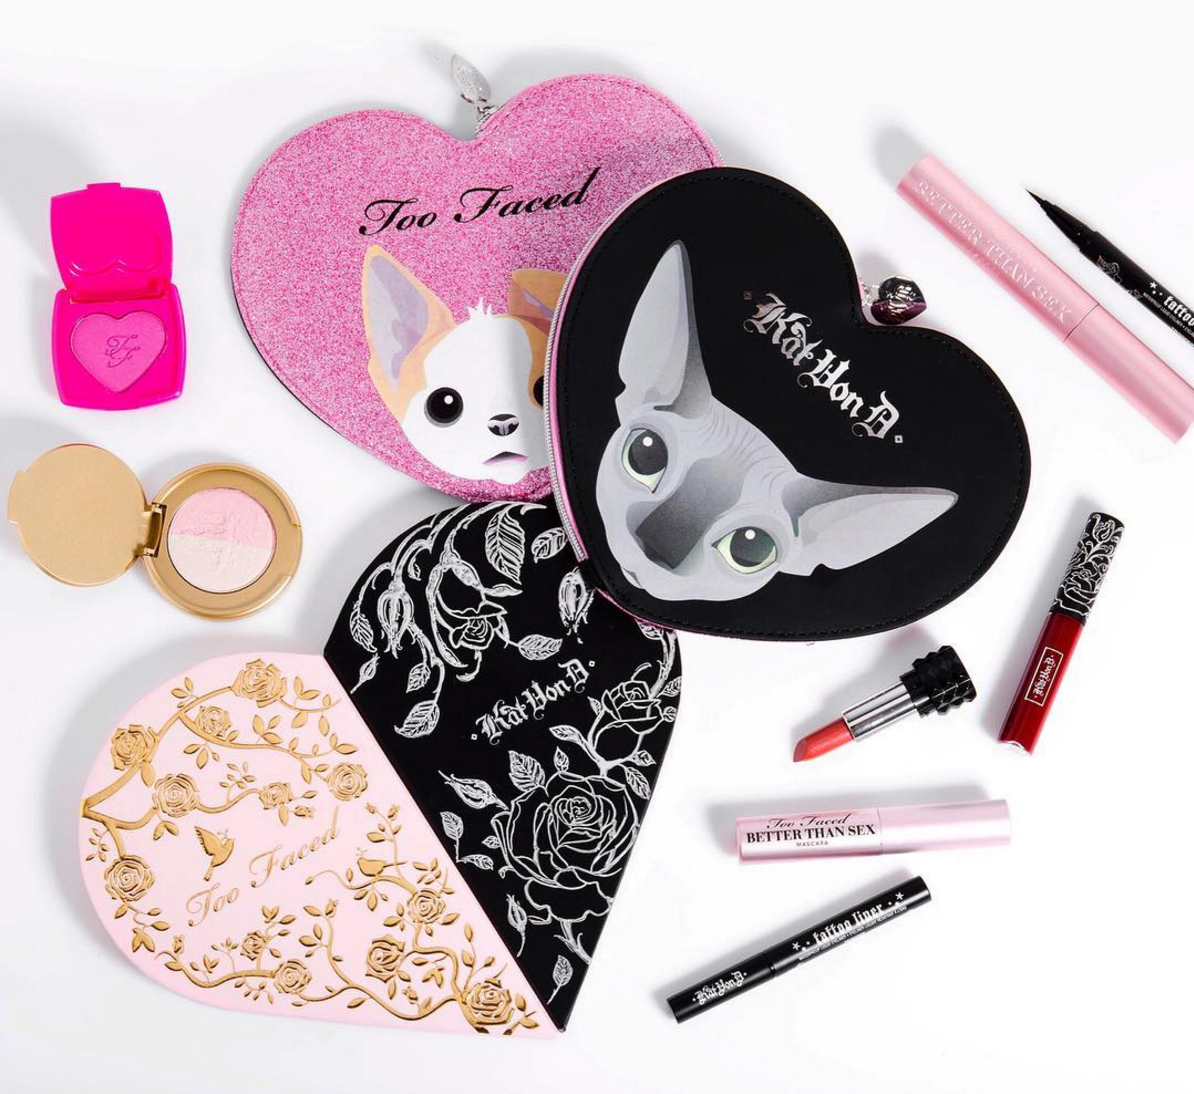 Très Full Better Together Collection - Too Faced x Kat Von D Collaboration LX04